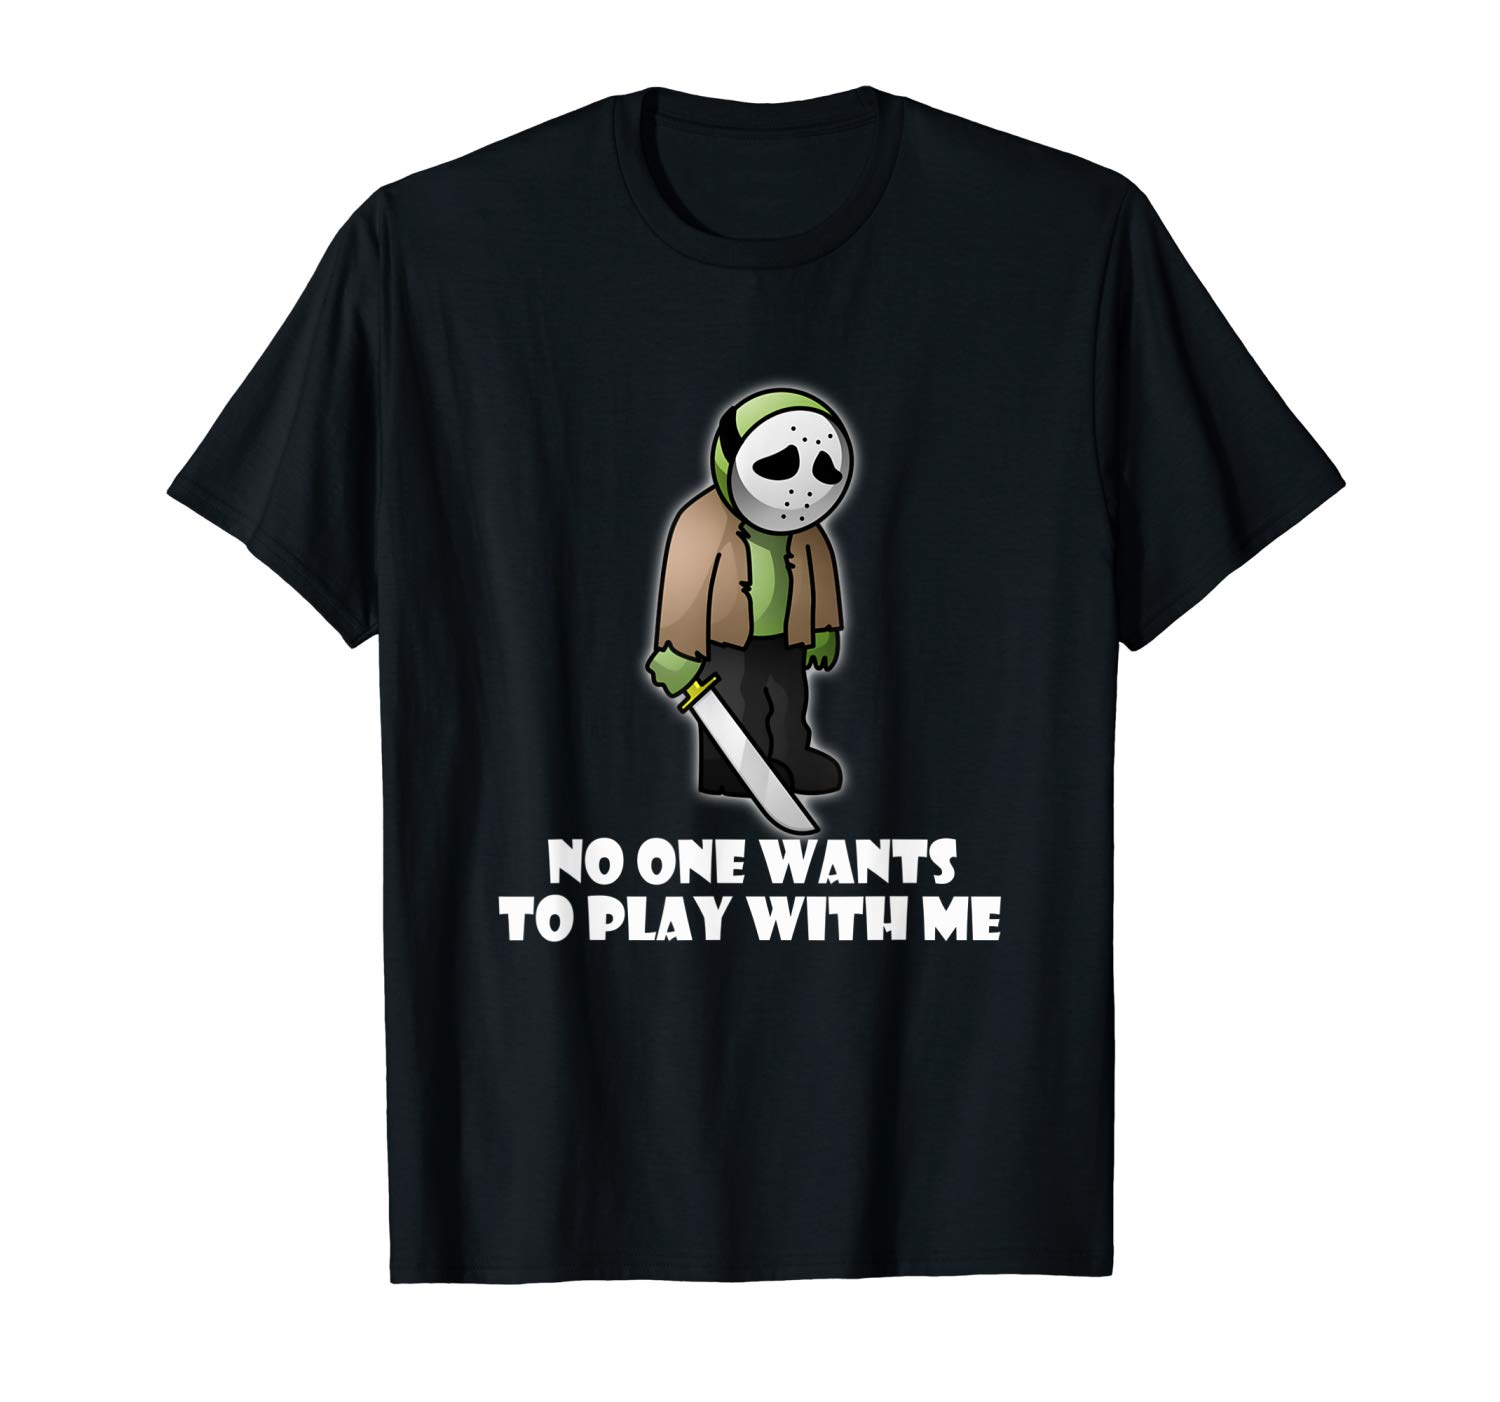 Jason No One Wants To Play With Me Funny Halloween Horror T Shirt